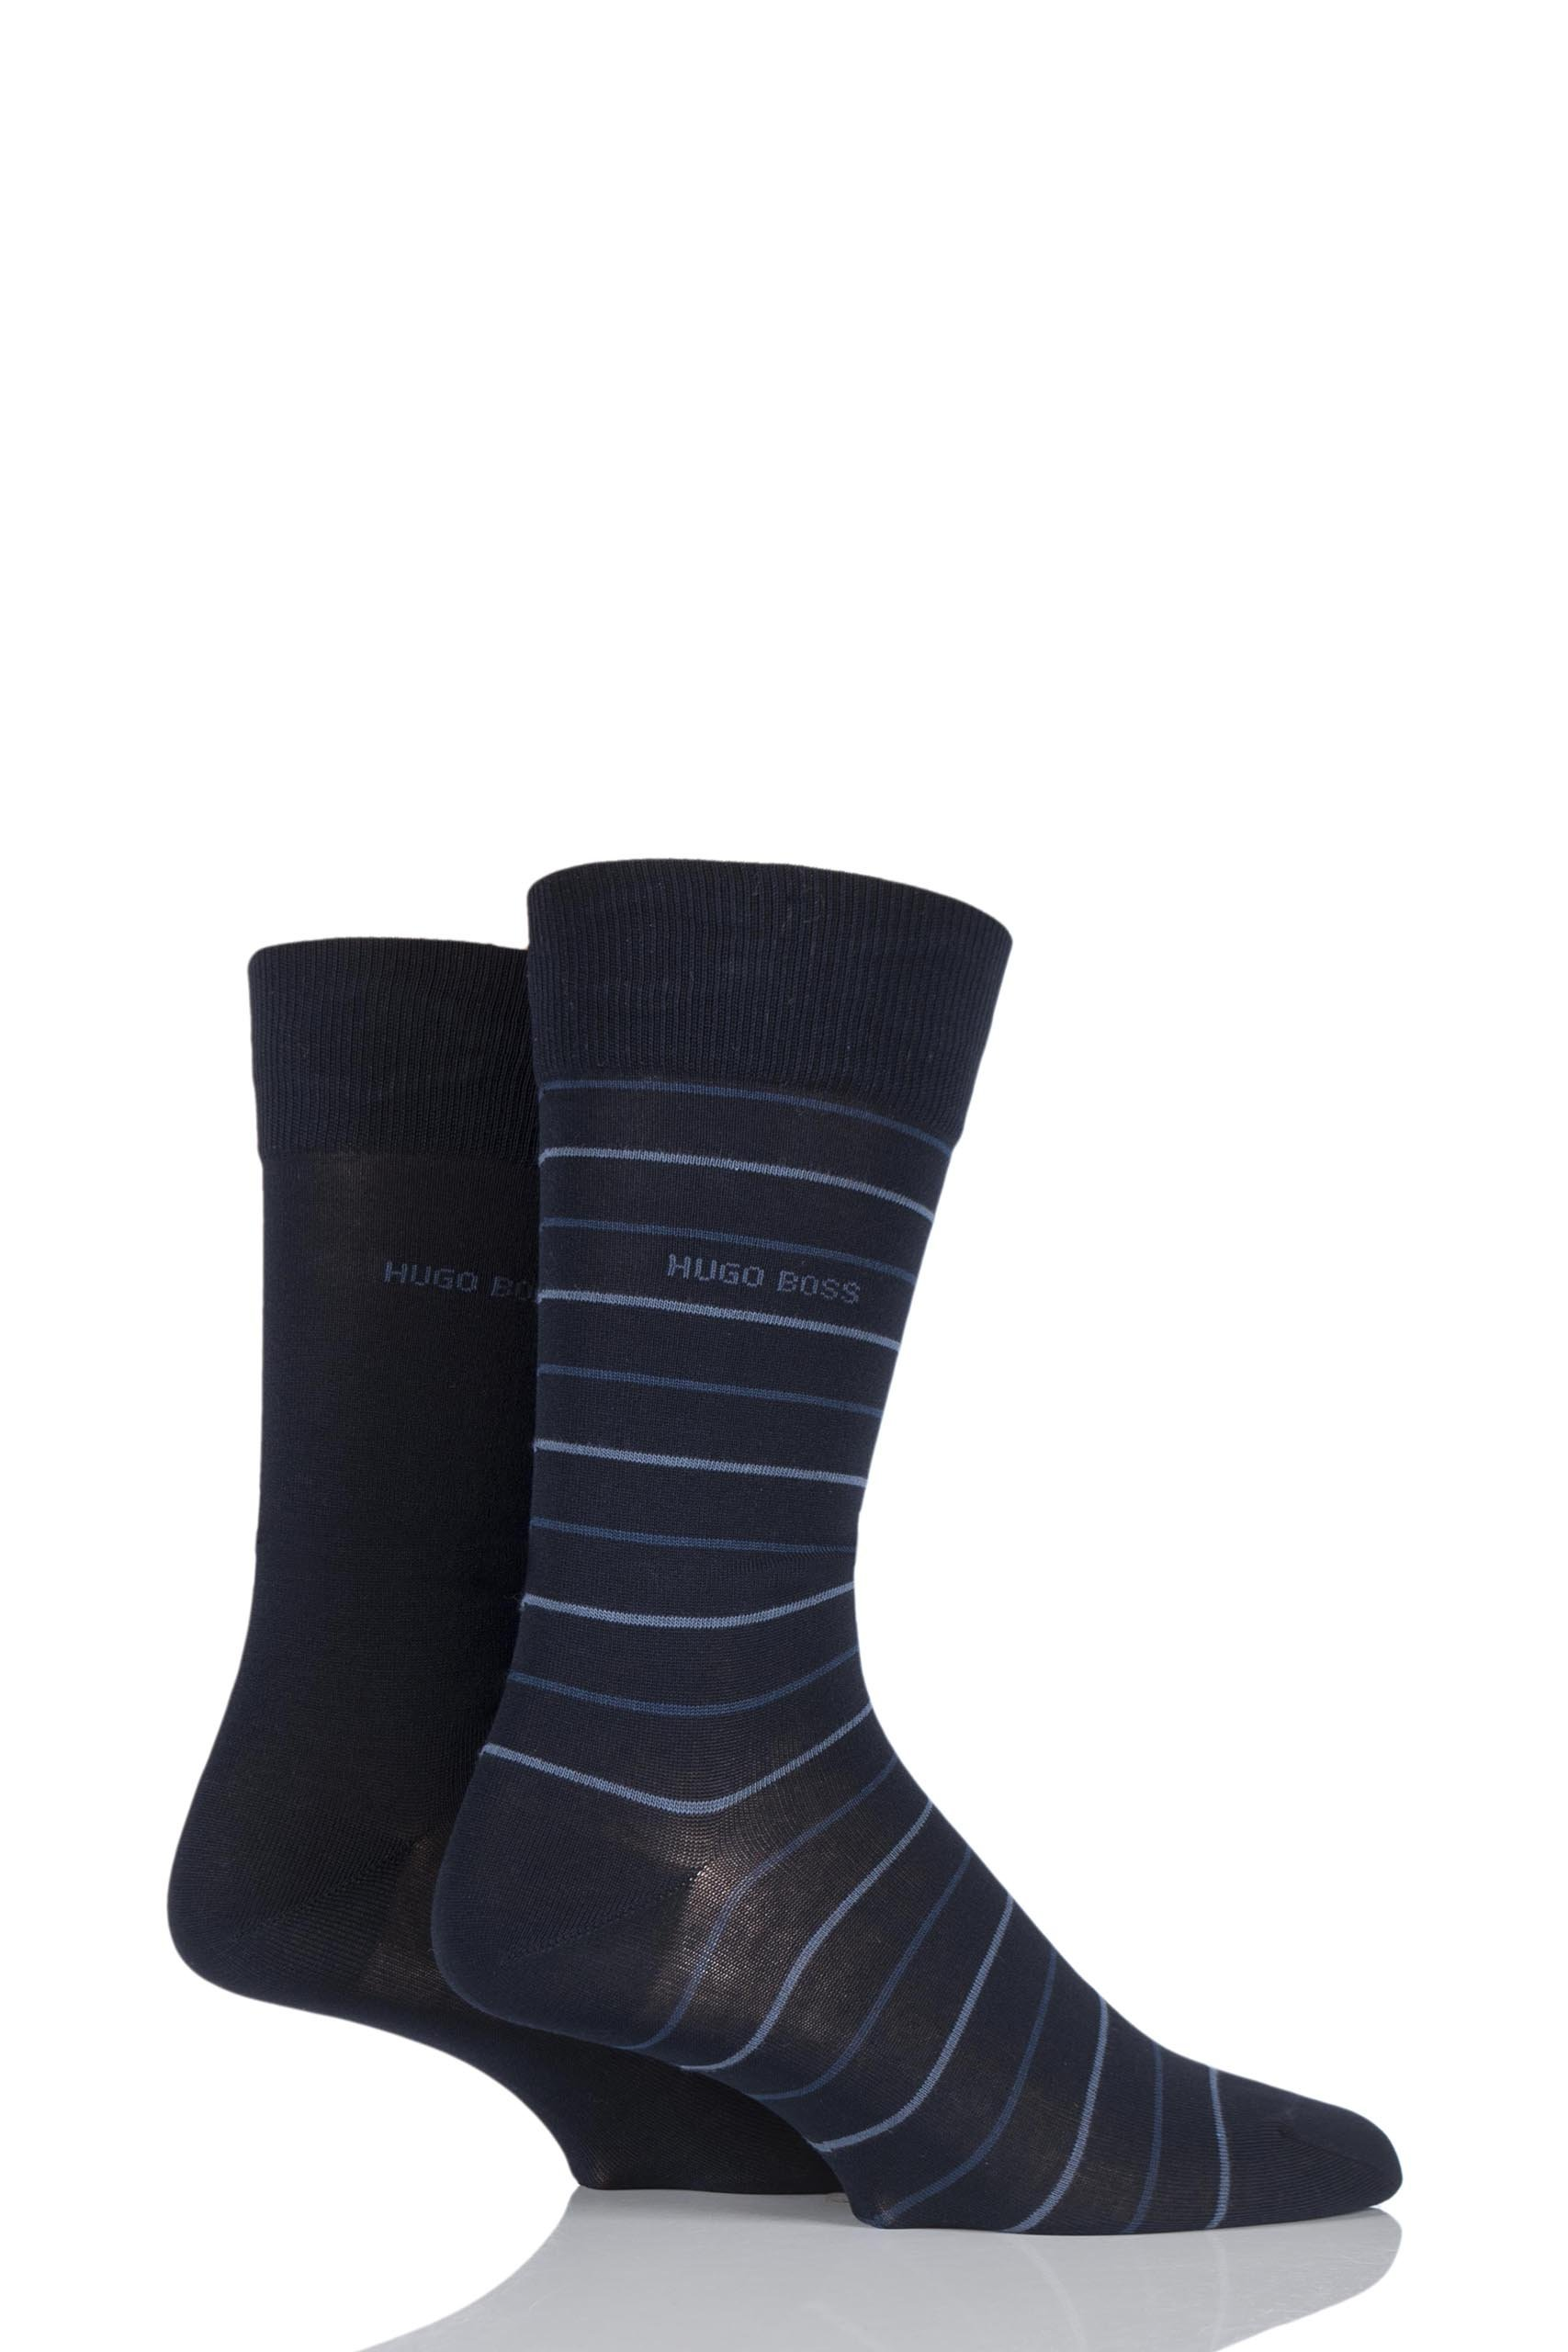 Mens 2 Pair Hugo Boss Fine Striped and Plain Mercerised Cotton Socks Dark Blue 5.5-8